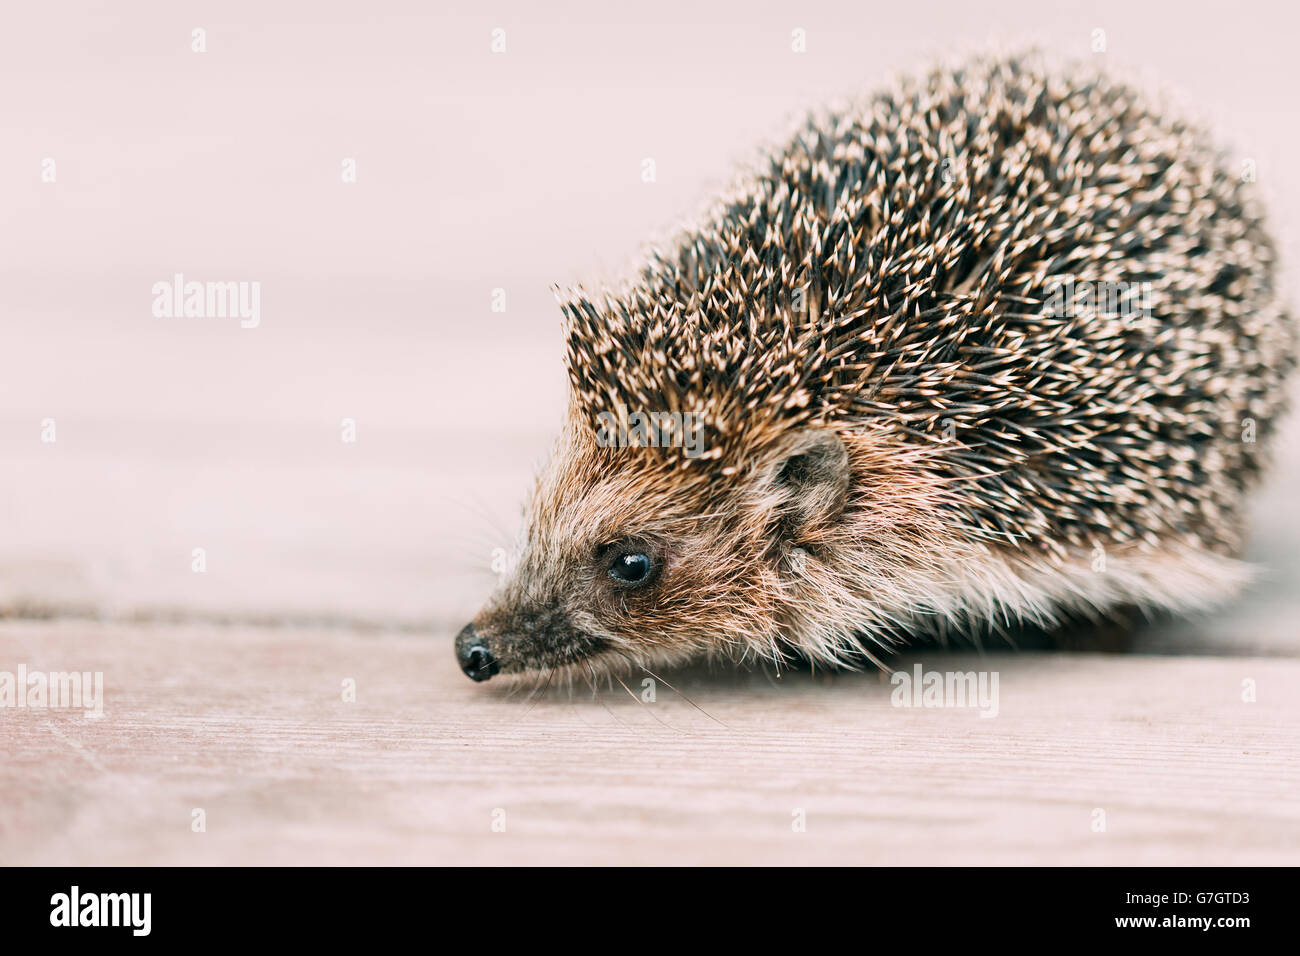 Small Cute Funny Lovely Hedgehog Standing On Wooden Floor - Stock Image